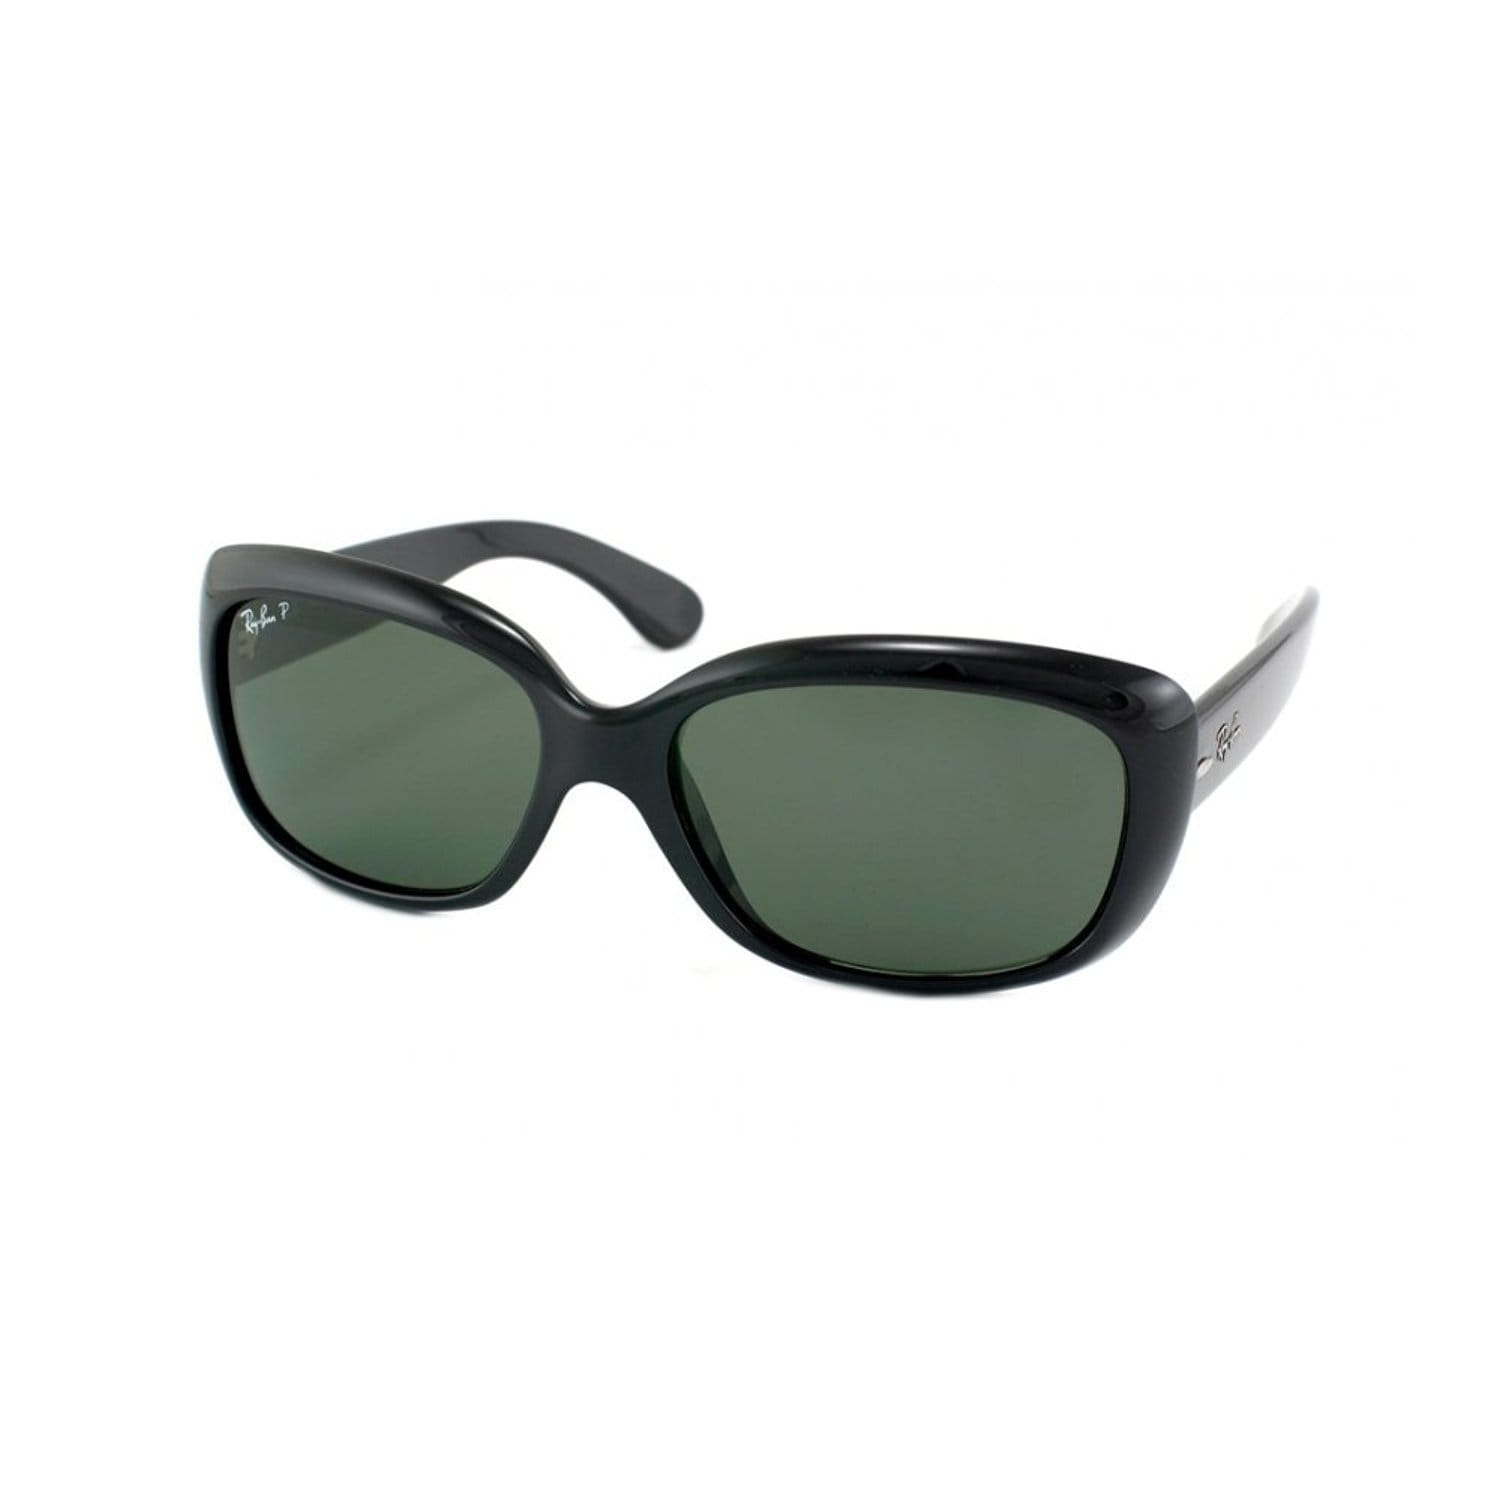 d197d11d017 Shop Ray-Ban Jackie Ohh RB4101 Women s Black Frame Green Lens Sunglasses -  Free Shipping Today - Overstock - 7586054